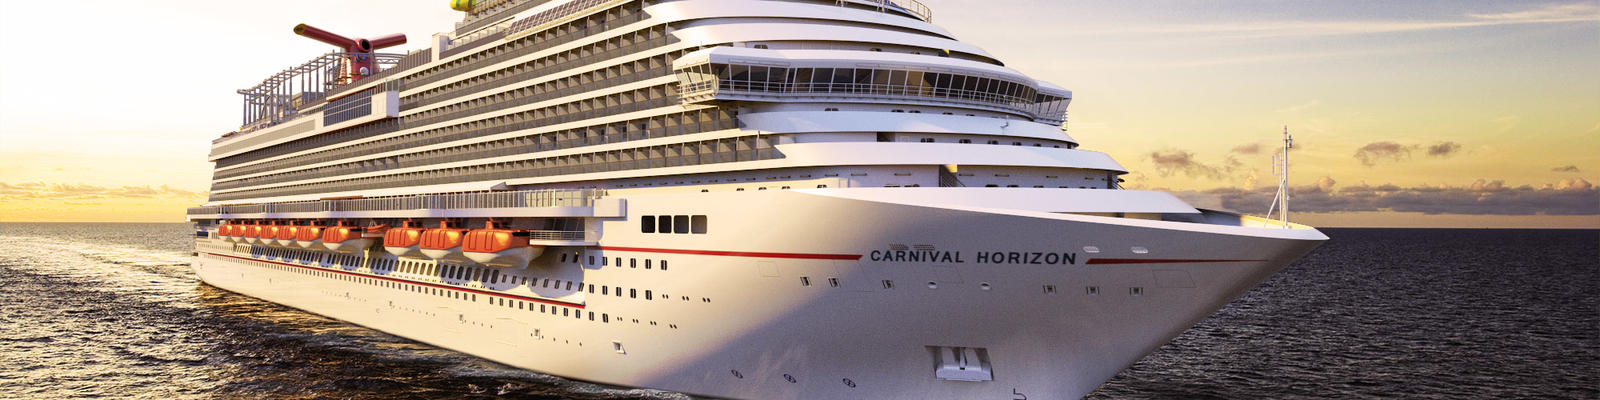 5 Things You Ll Love About Carnival Horizon Cruise Critic